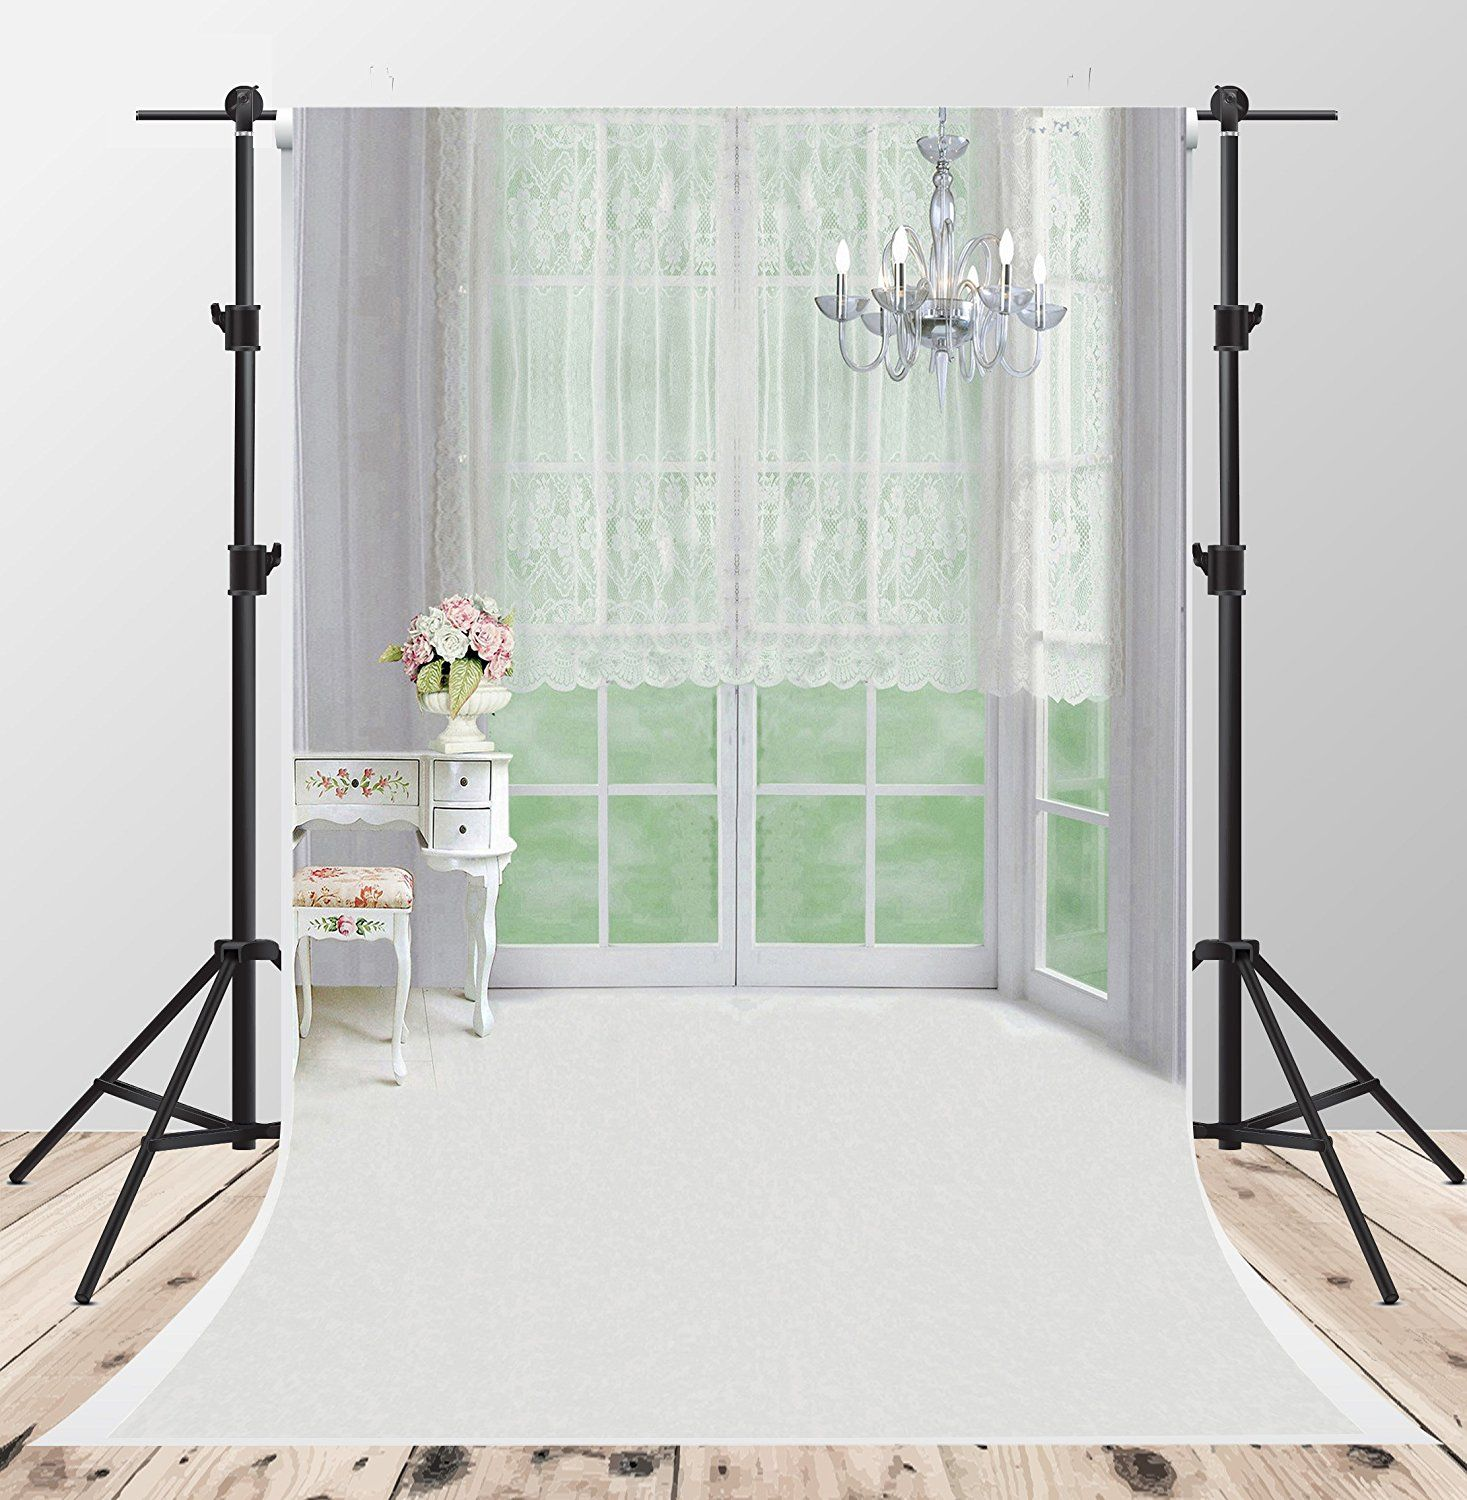 Kate 10x6.5ft Classical Headboard Backdrops for Photography Indoor Bedroom Newborn Photo Background